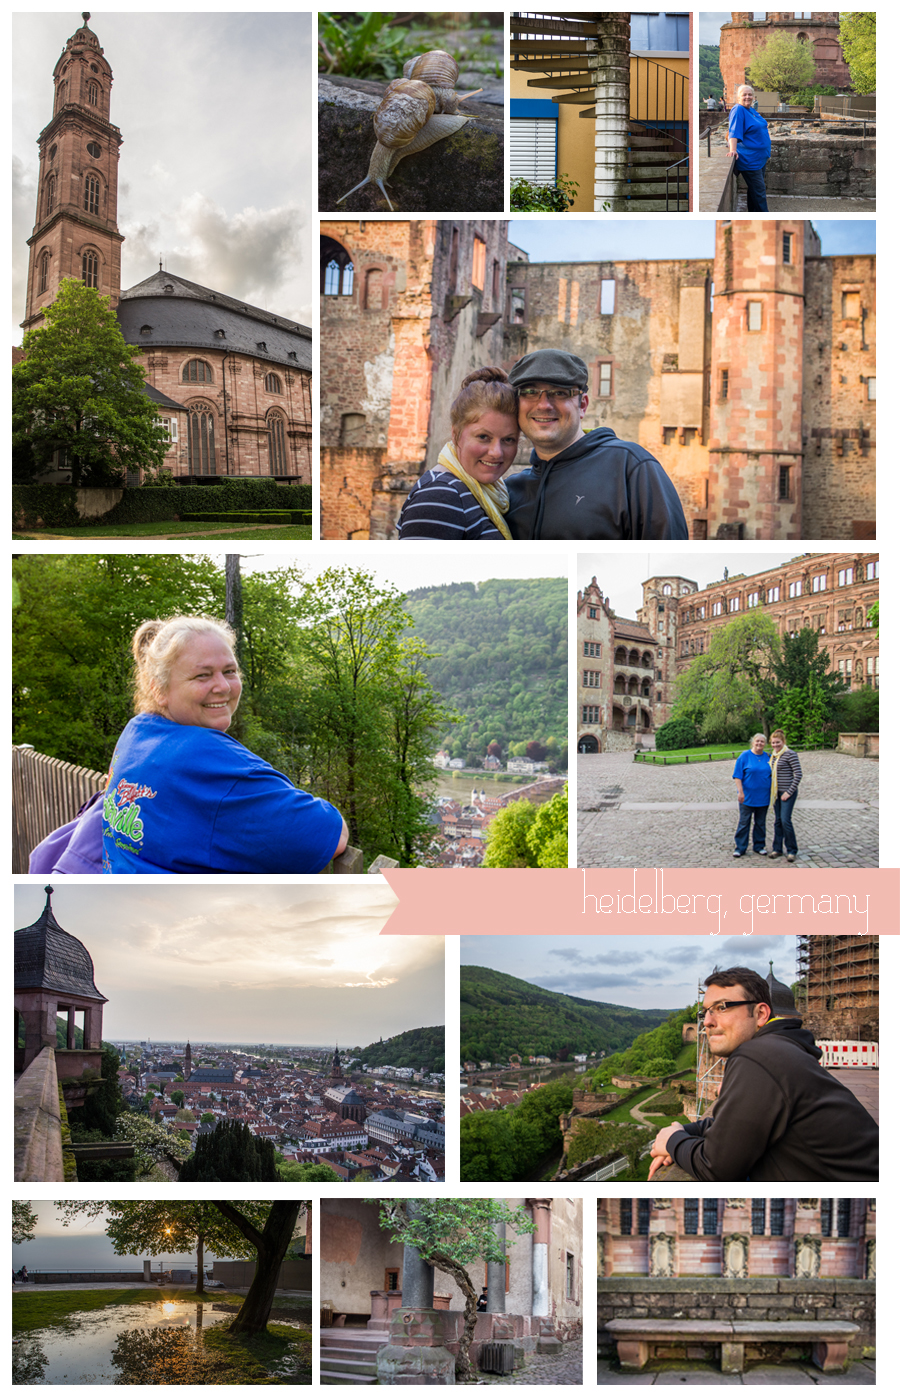 Day trips from Rheinland Pfalz: Heidelberg, Germany